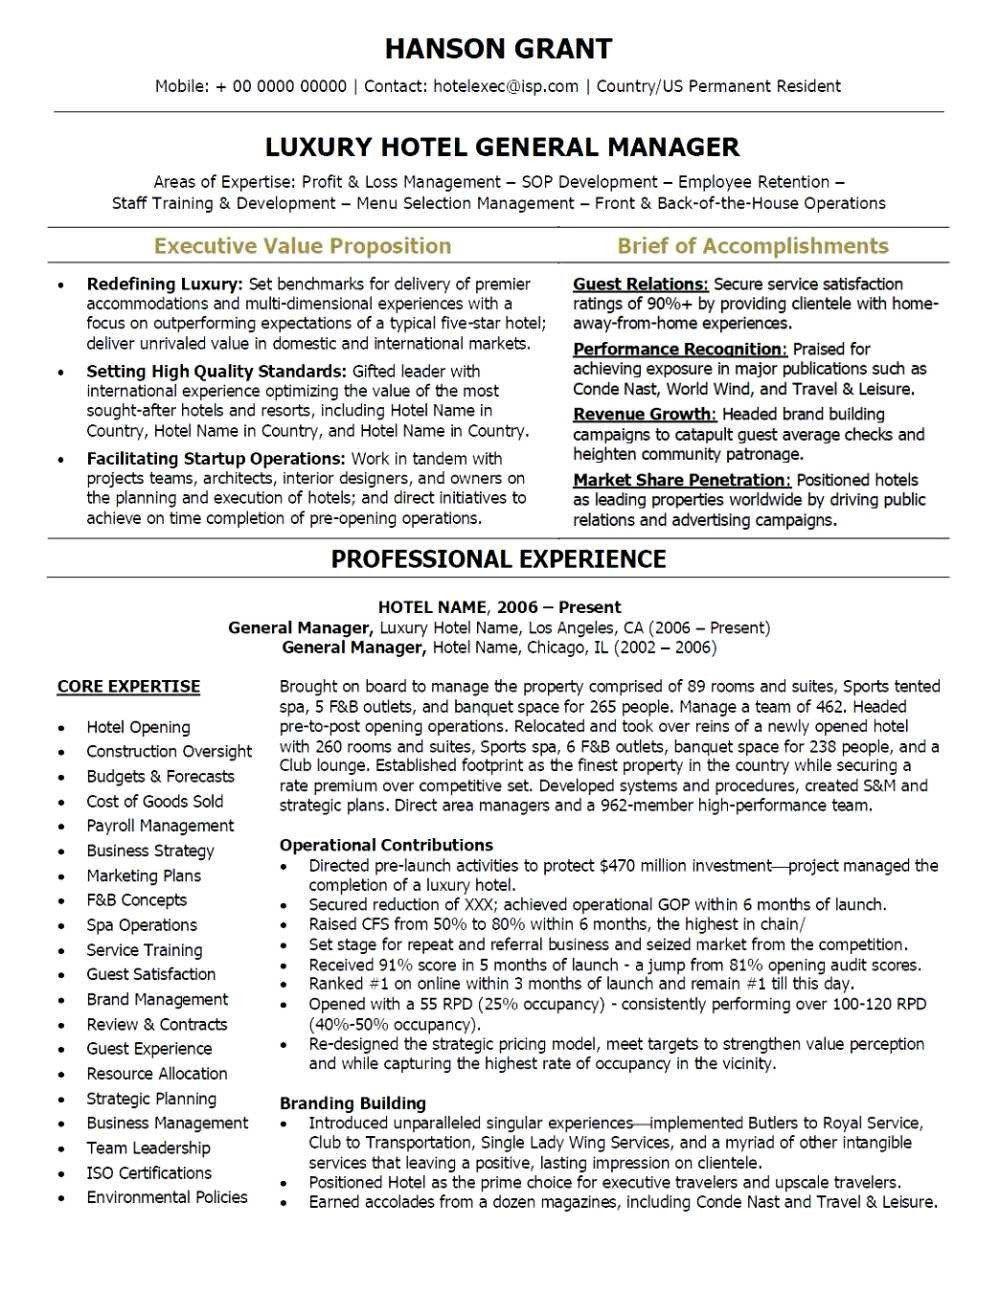 32 Elegant Resume Writing Service Chicago In 2020 With Images